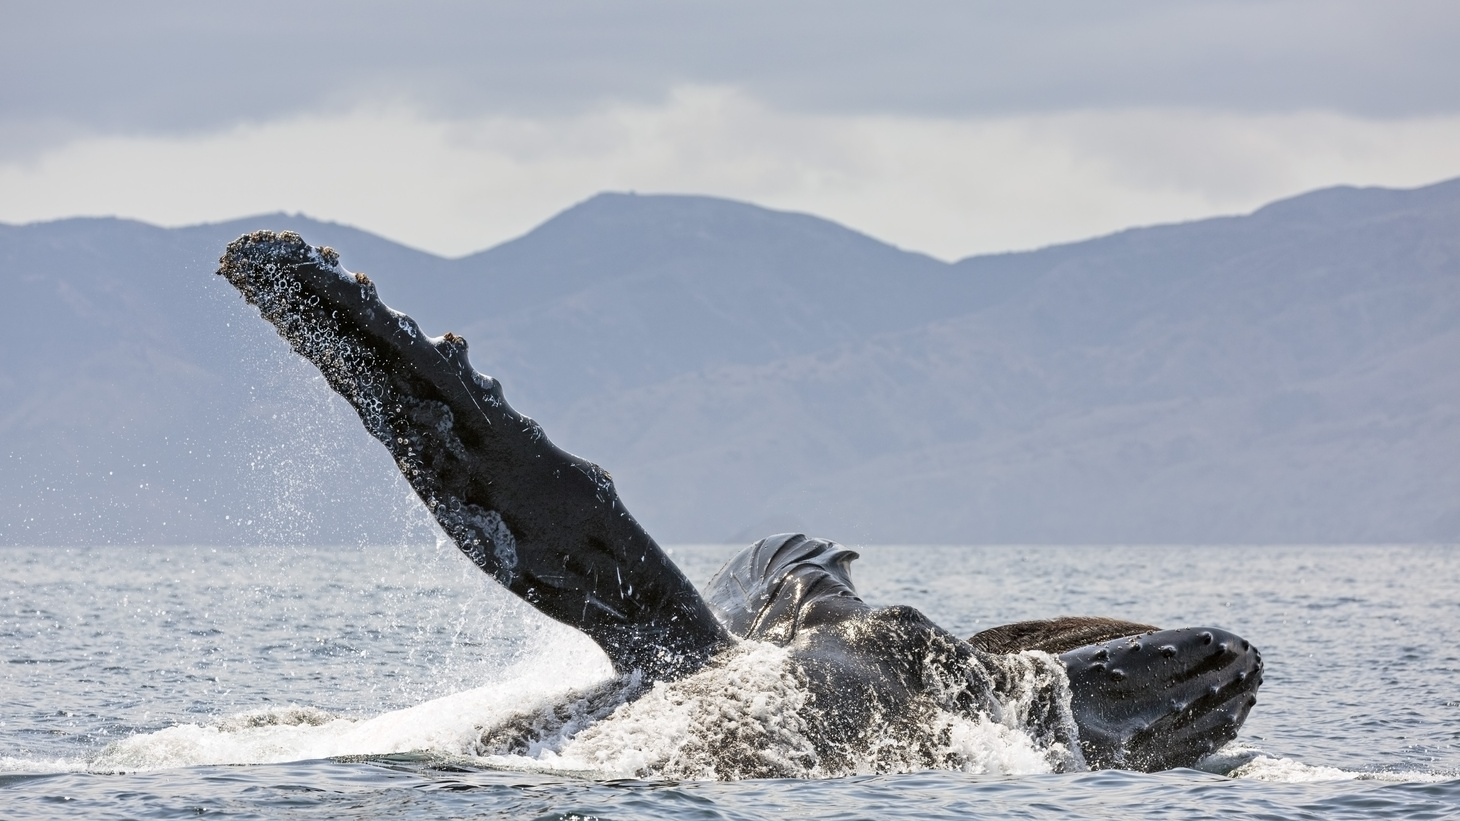 A humpback whale is lunge-feeding in Channel Islands National Park, Santa Barbara.